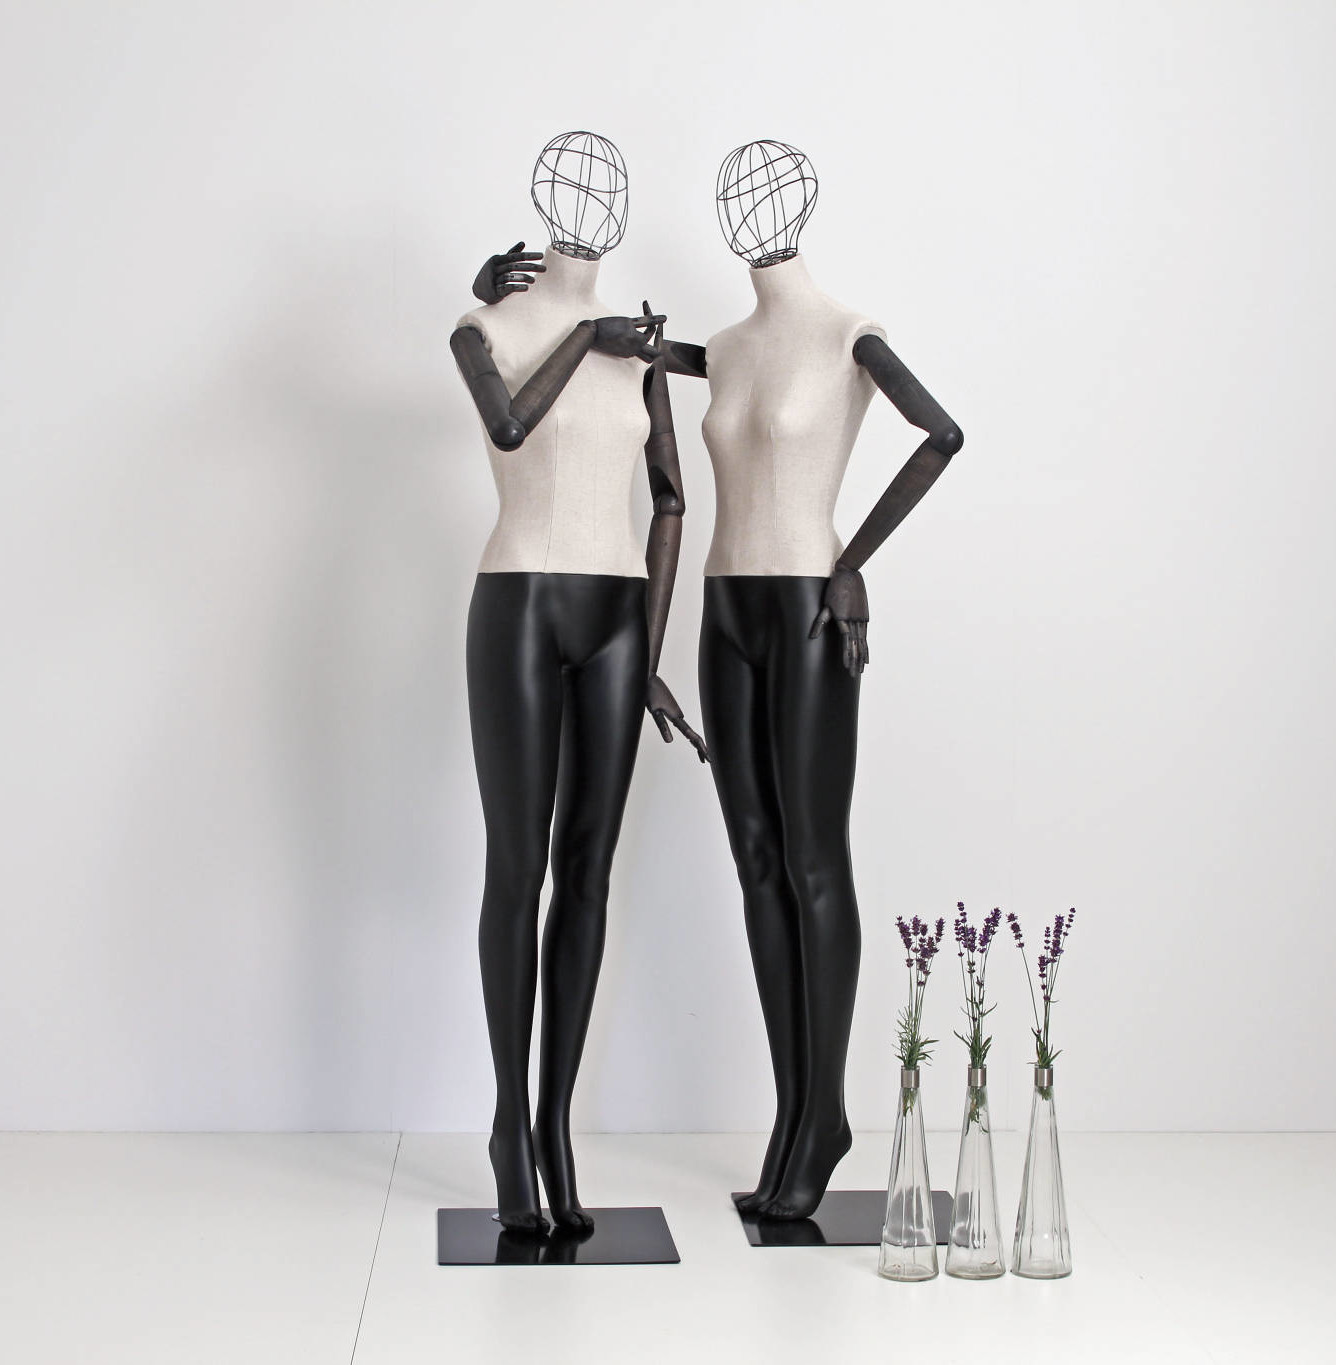 Articulated mannequins with wireheads